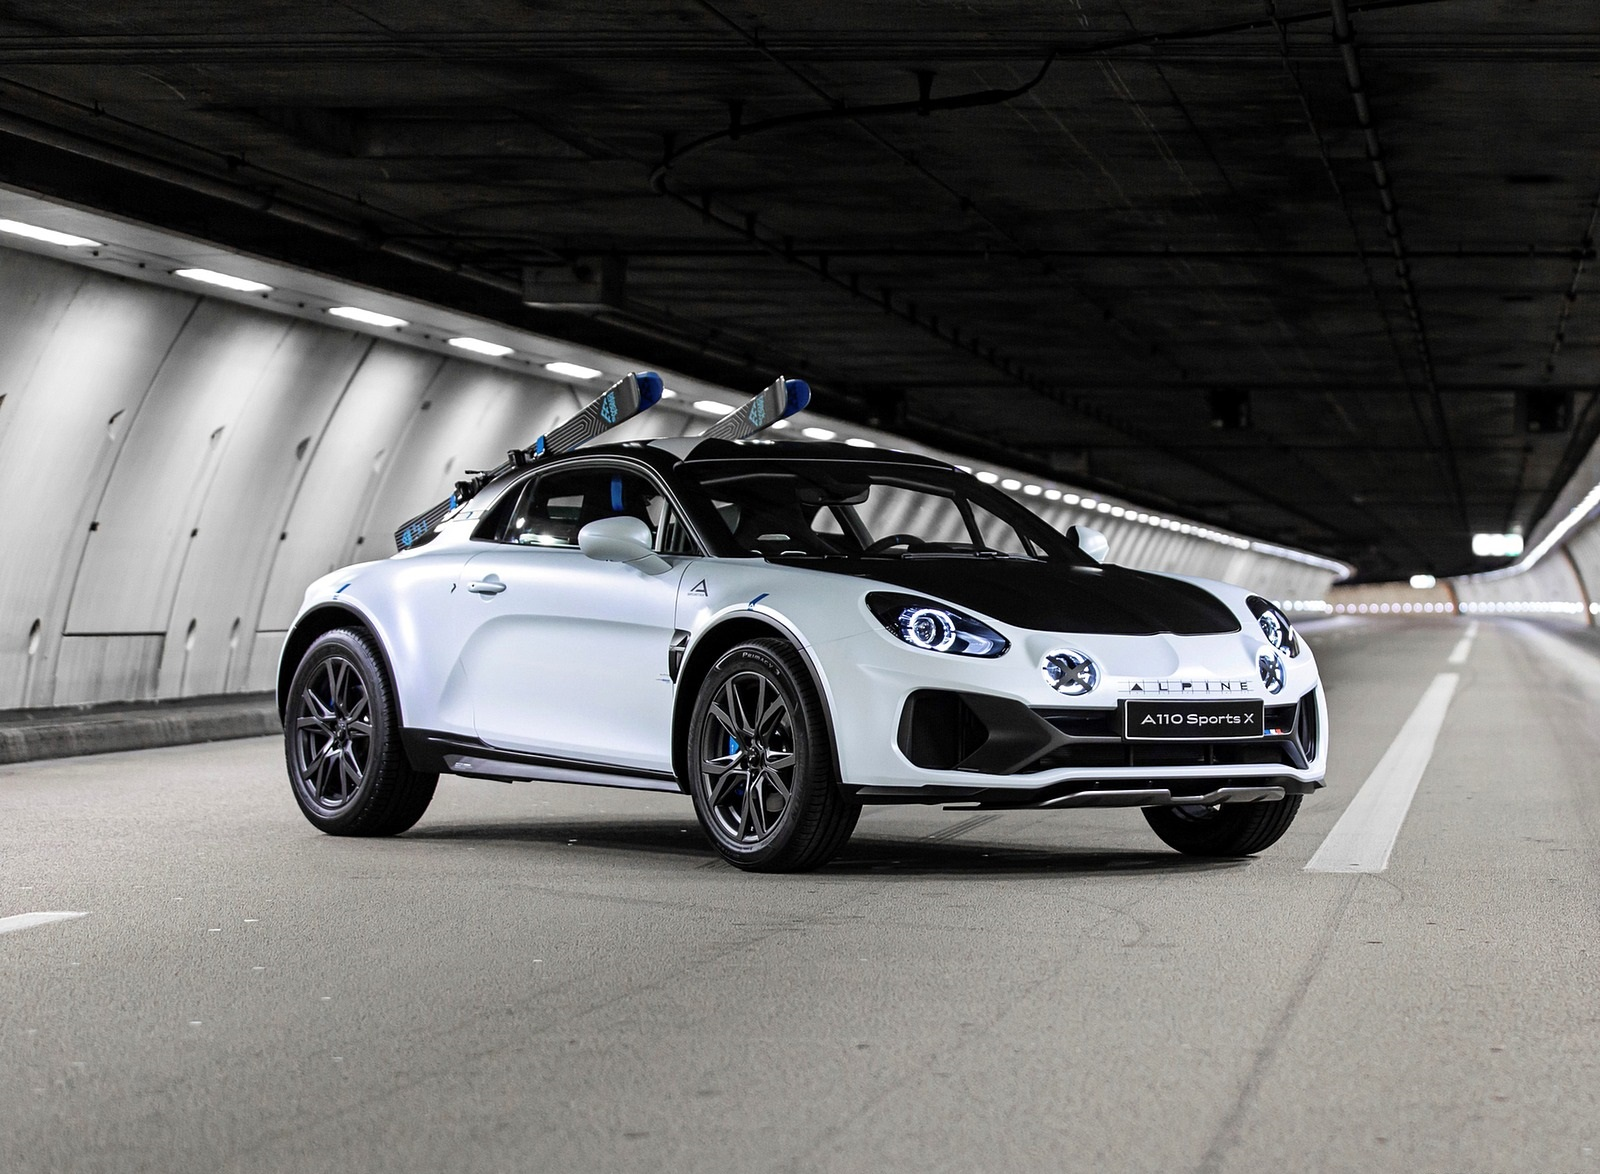 2020 Alpine A110 SportsX Concept Front Three-Quarter Wallpapers (4)